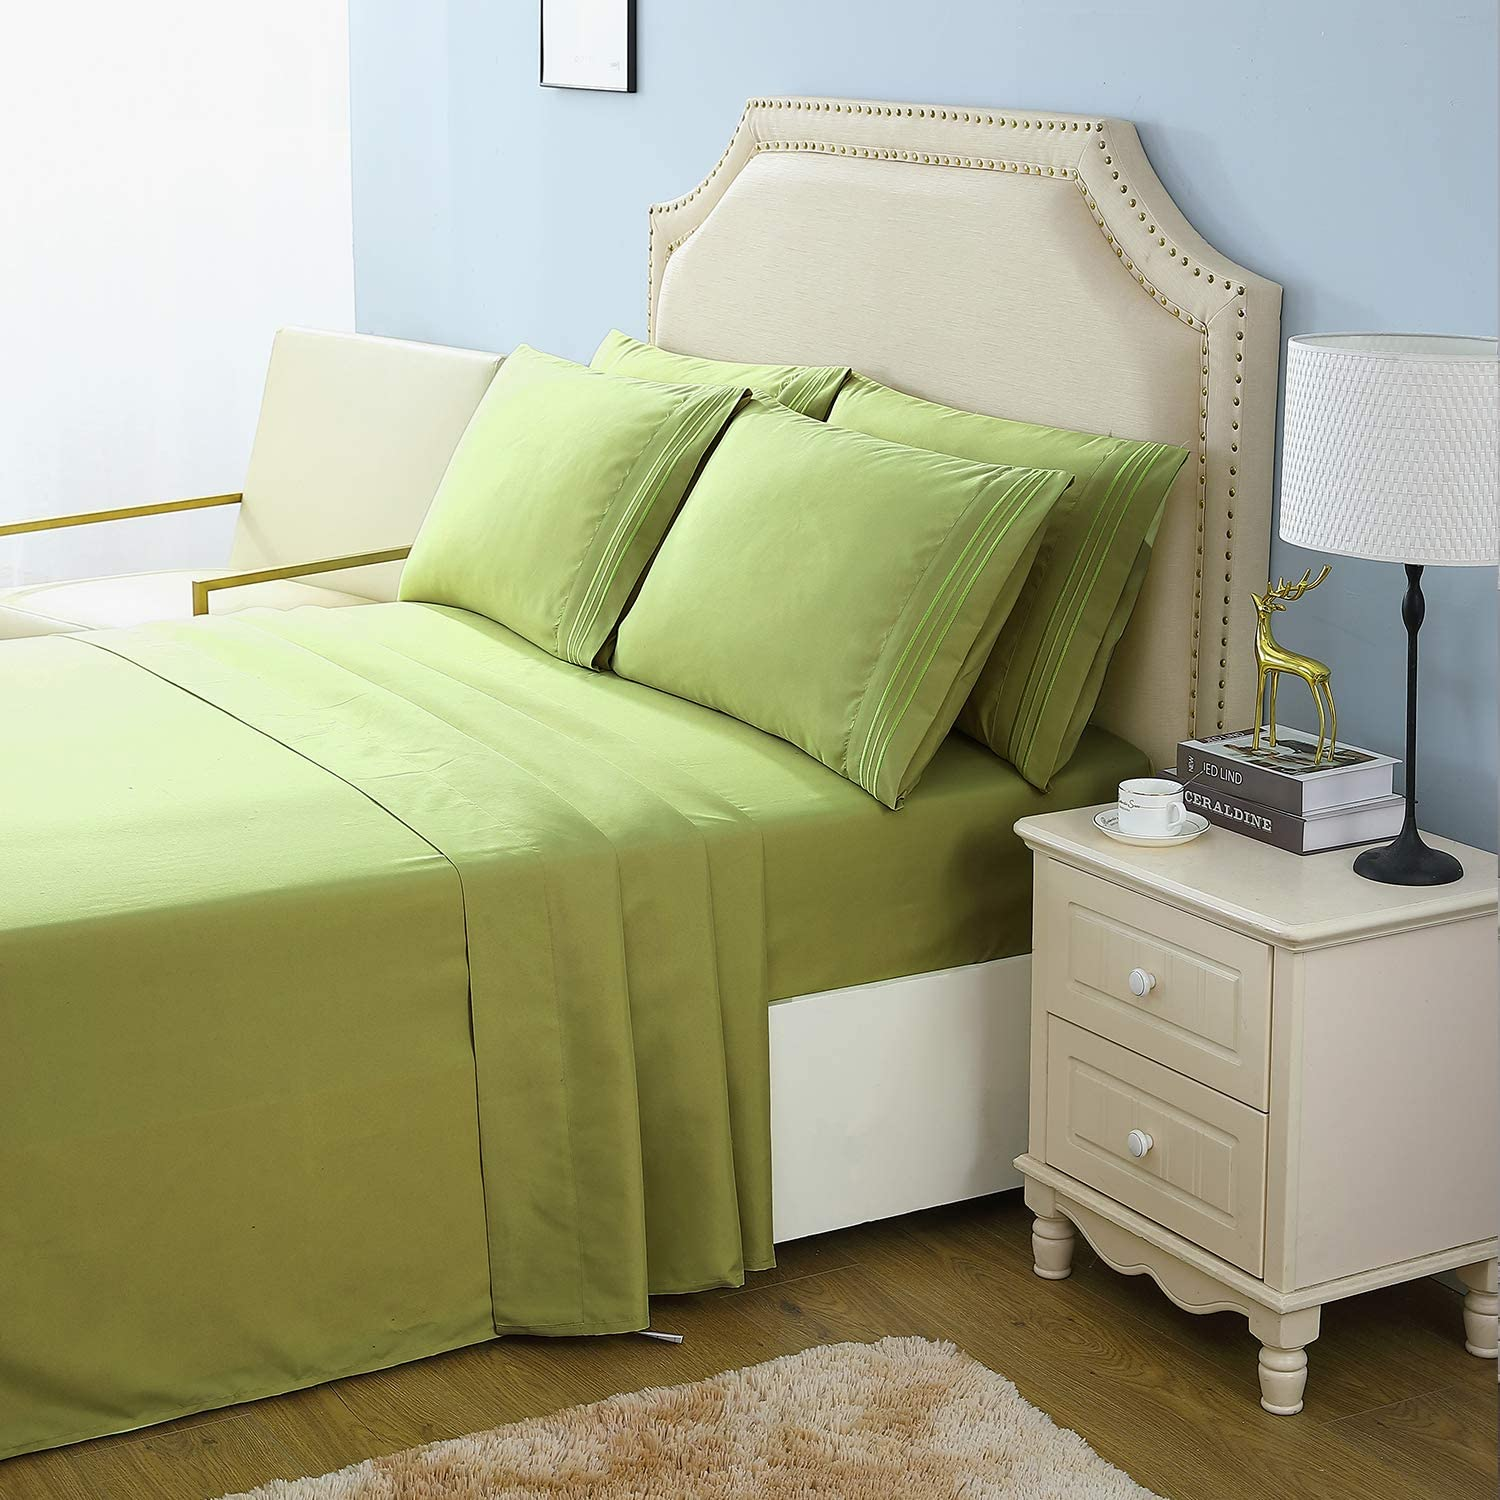 VAELY 1800 Thread Count Bed Sheets Set Cooling Brush Microfiber Soft Luxury Egyptian Sheets 16-Inch Deep Pocket Wrinkle, Fade, Shrink, Stain Resistant and Hypoallergenic - 6 Piece (Sage Green, King)